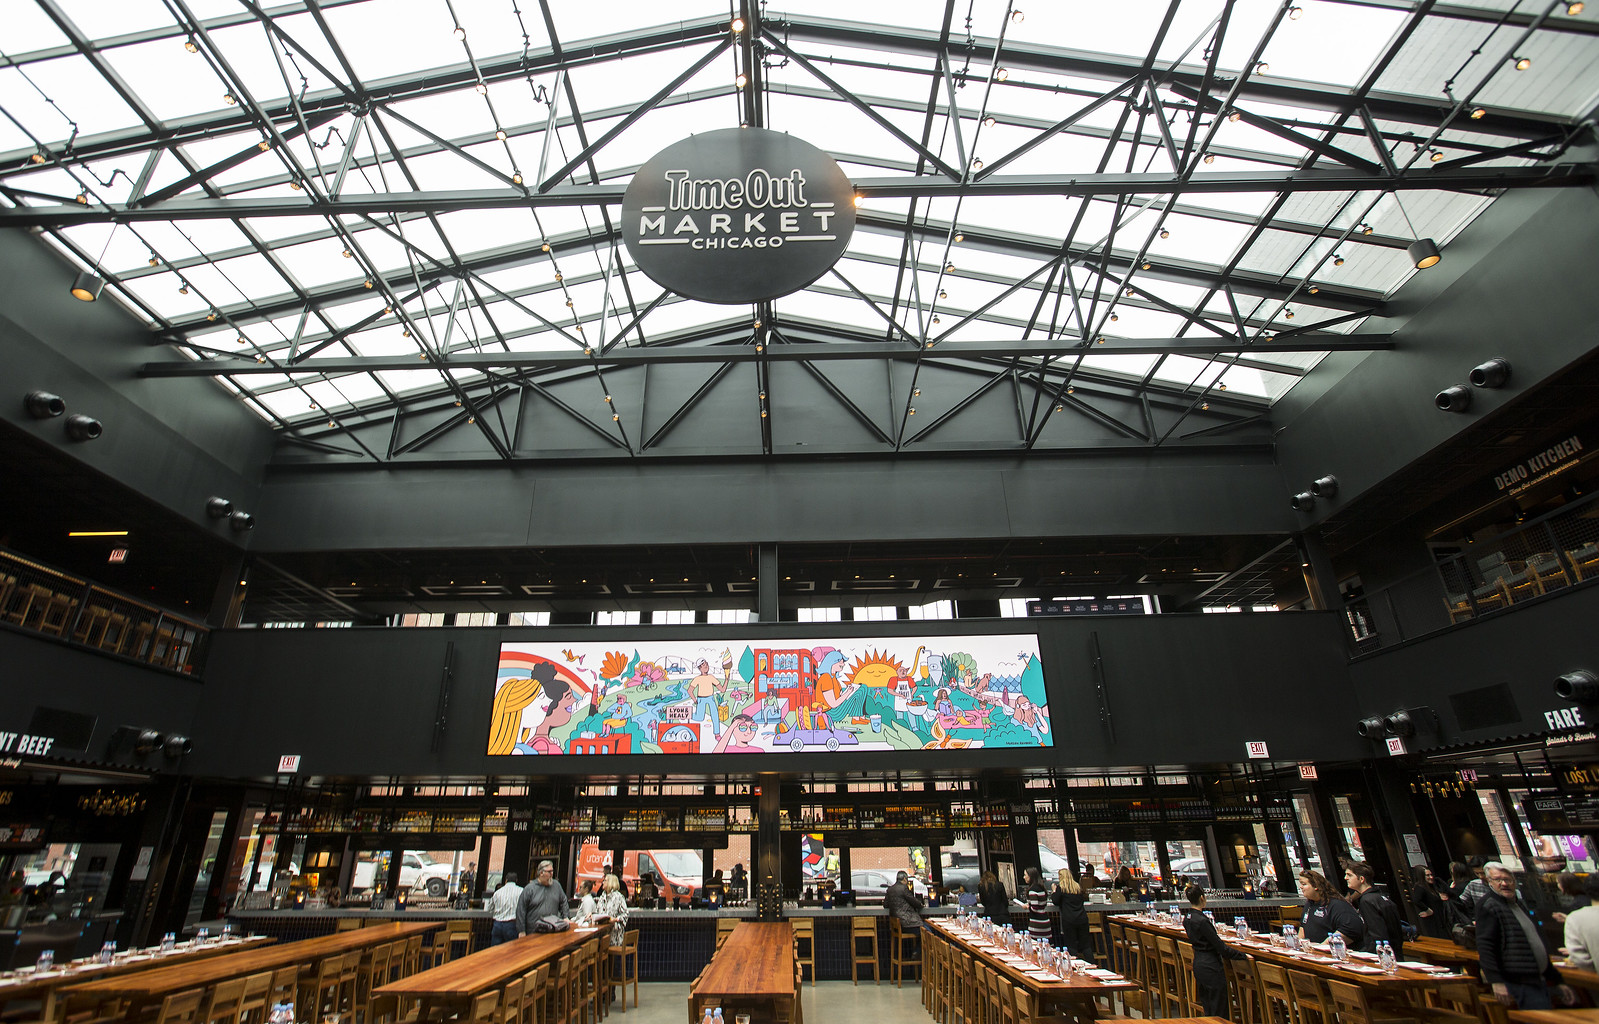 A skylight and a giant video screen hang over a large dining room with communal seating.